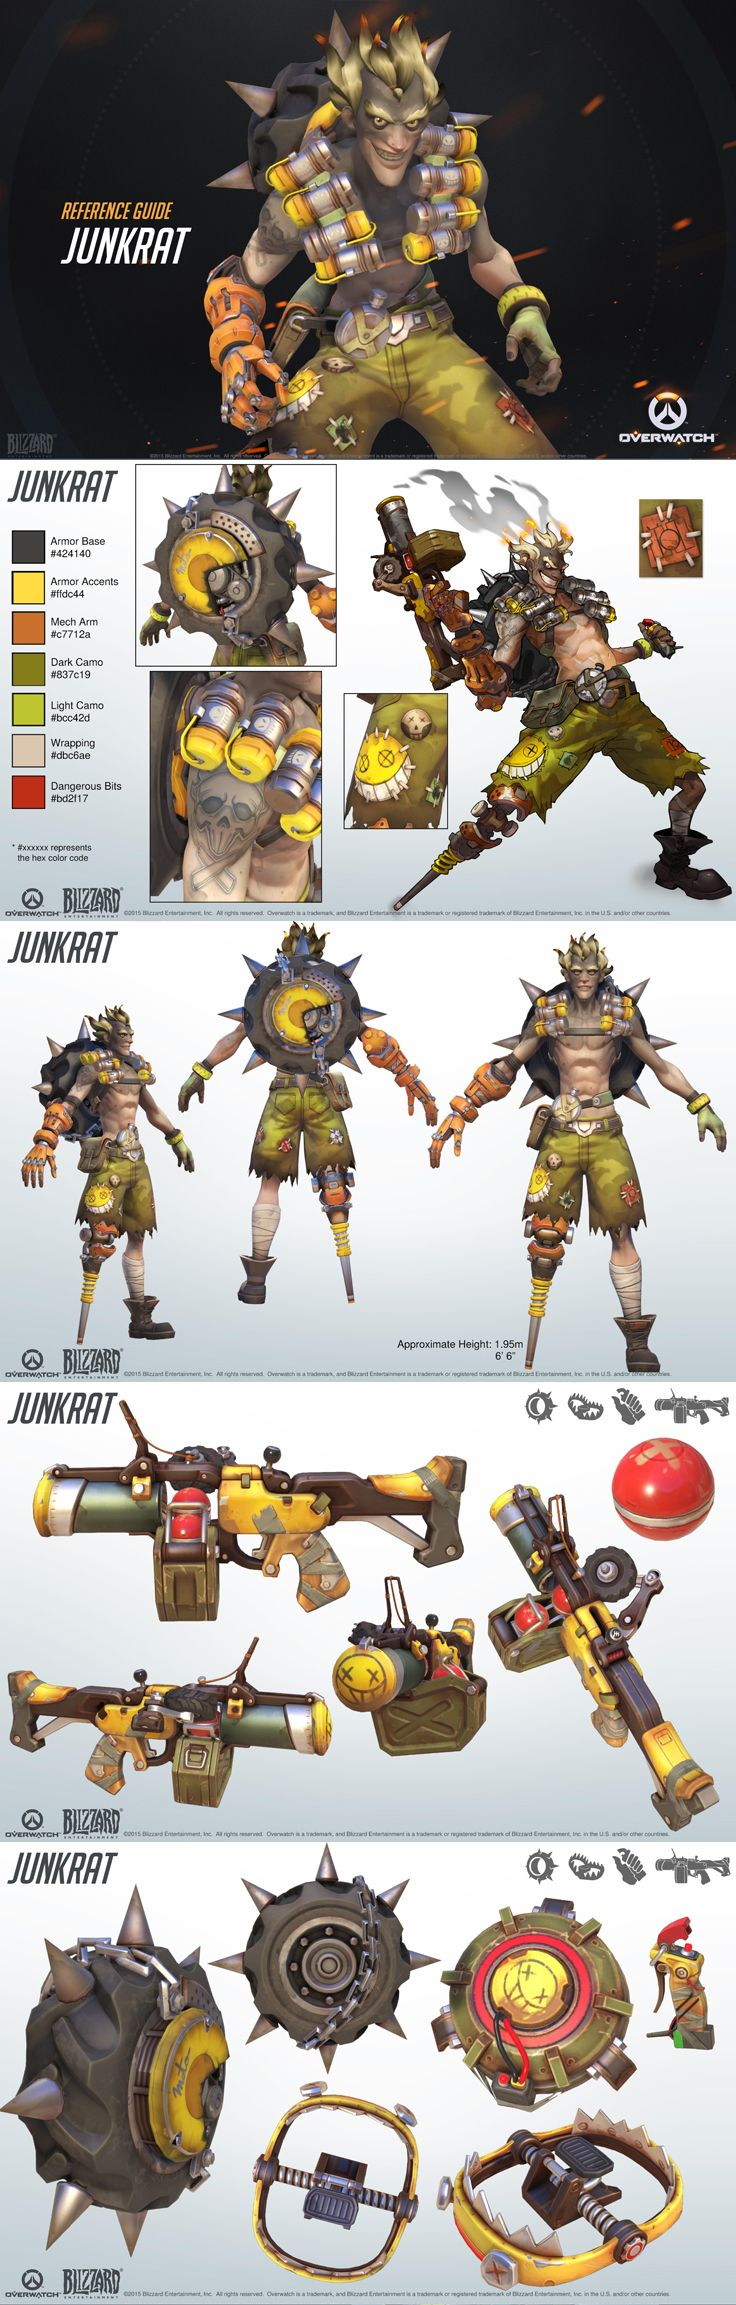 Junkrat Reference Guide